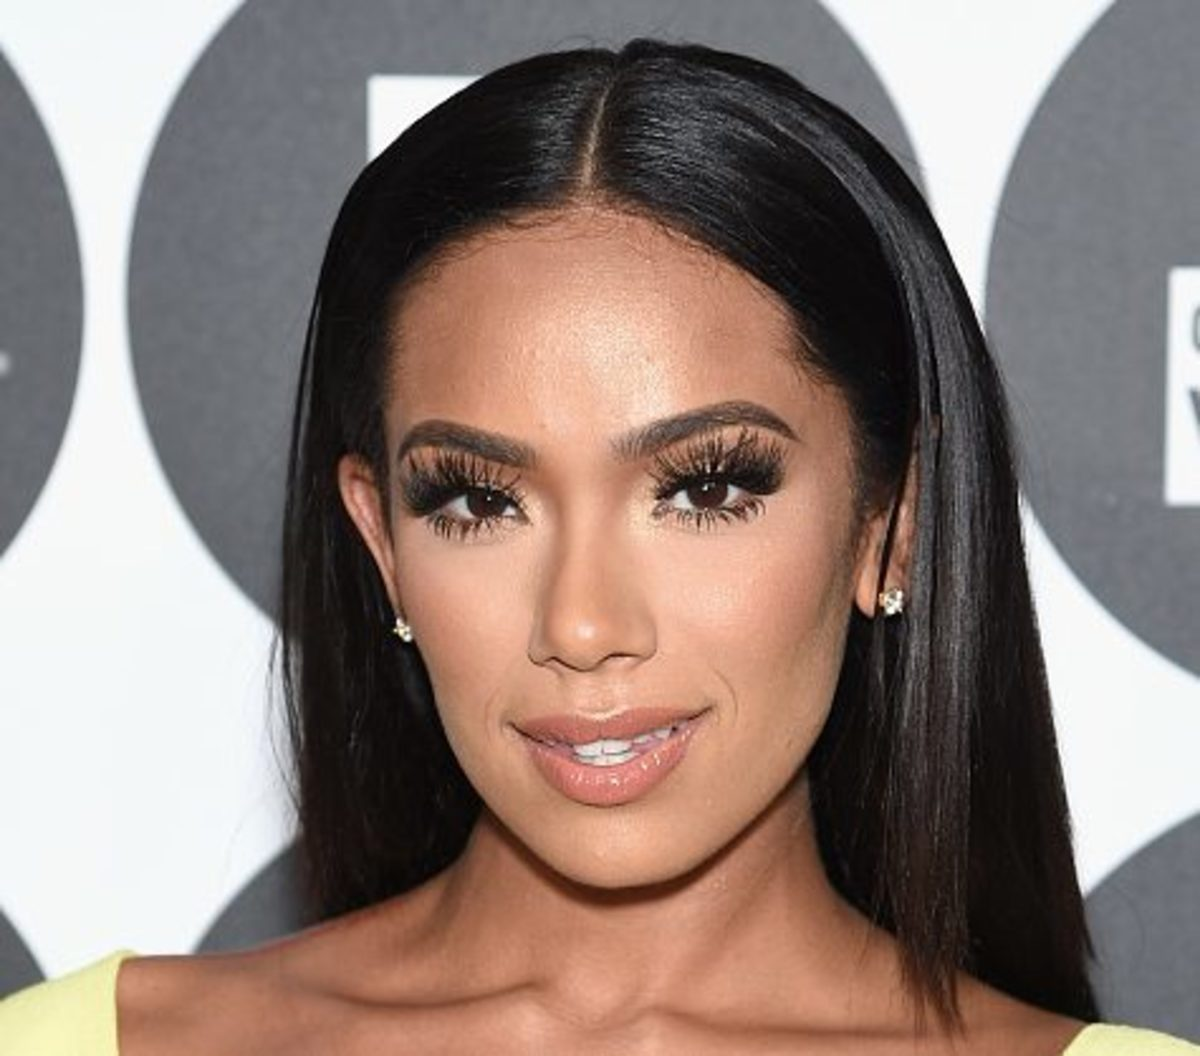 Erica Mena Shows Off Her Snatched Body In A Fire Animal Print Outfit - Check Out Her New Photo!